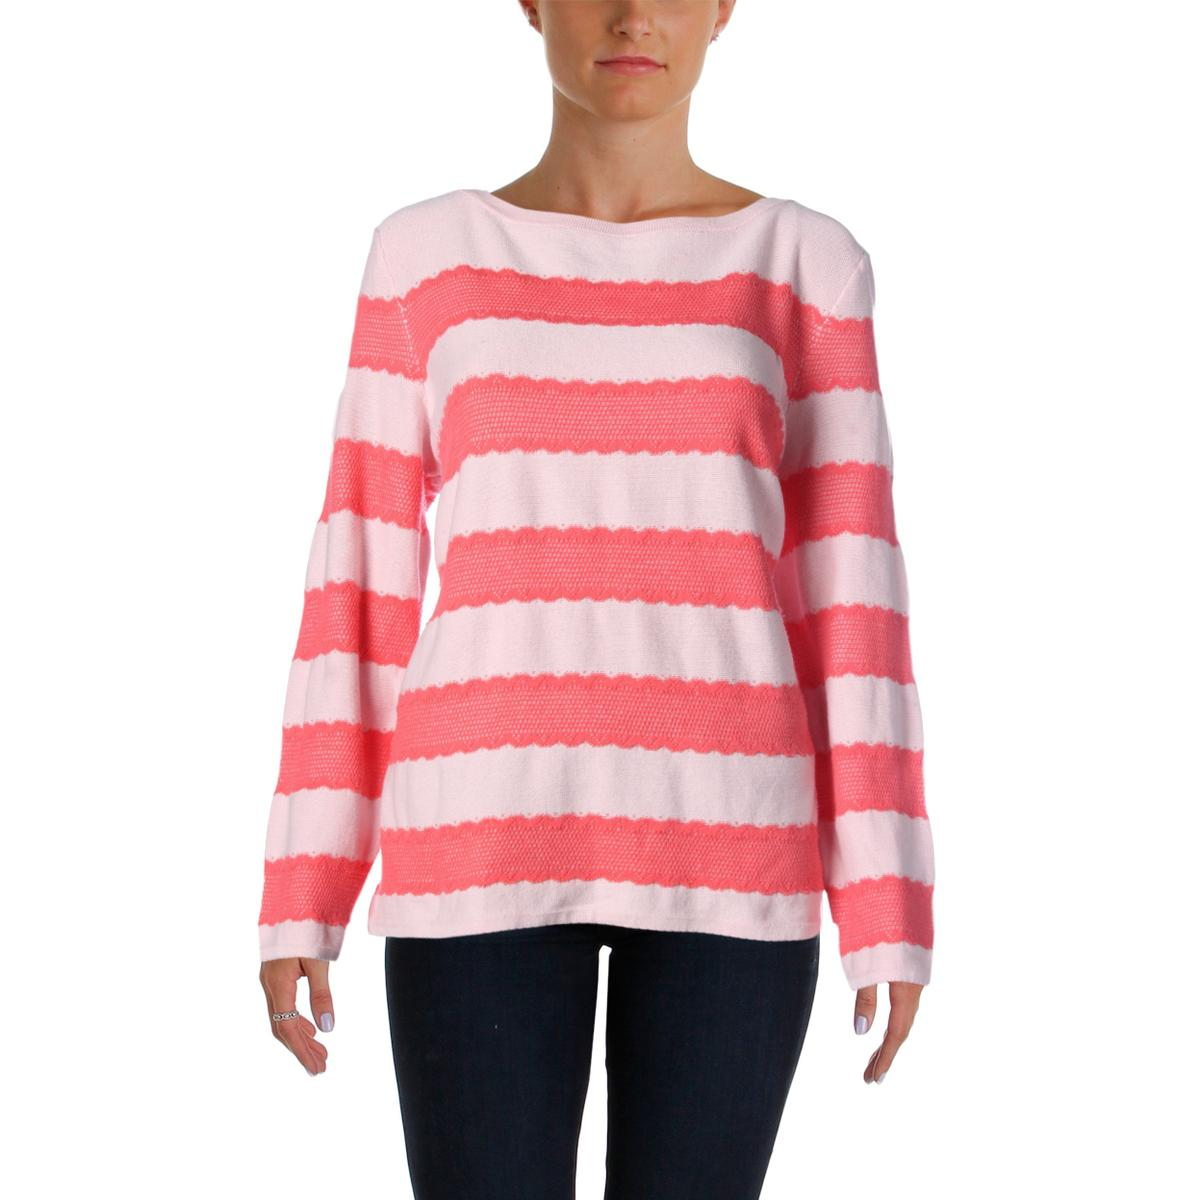 tommy hilfiger 2690 womens heathered lace trim pullover sweater top bhfo ebay. Black Bedroom Furniture Sets. Home Design Ideas